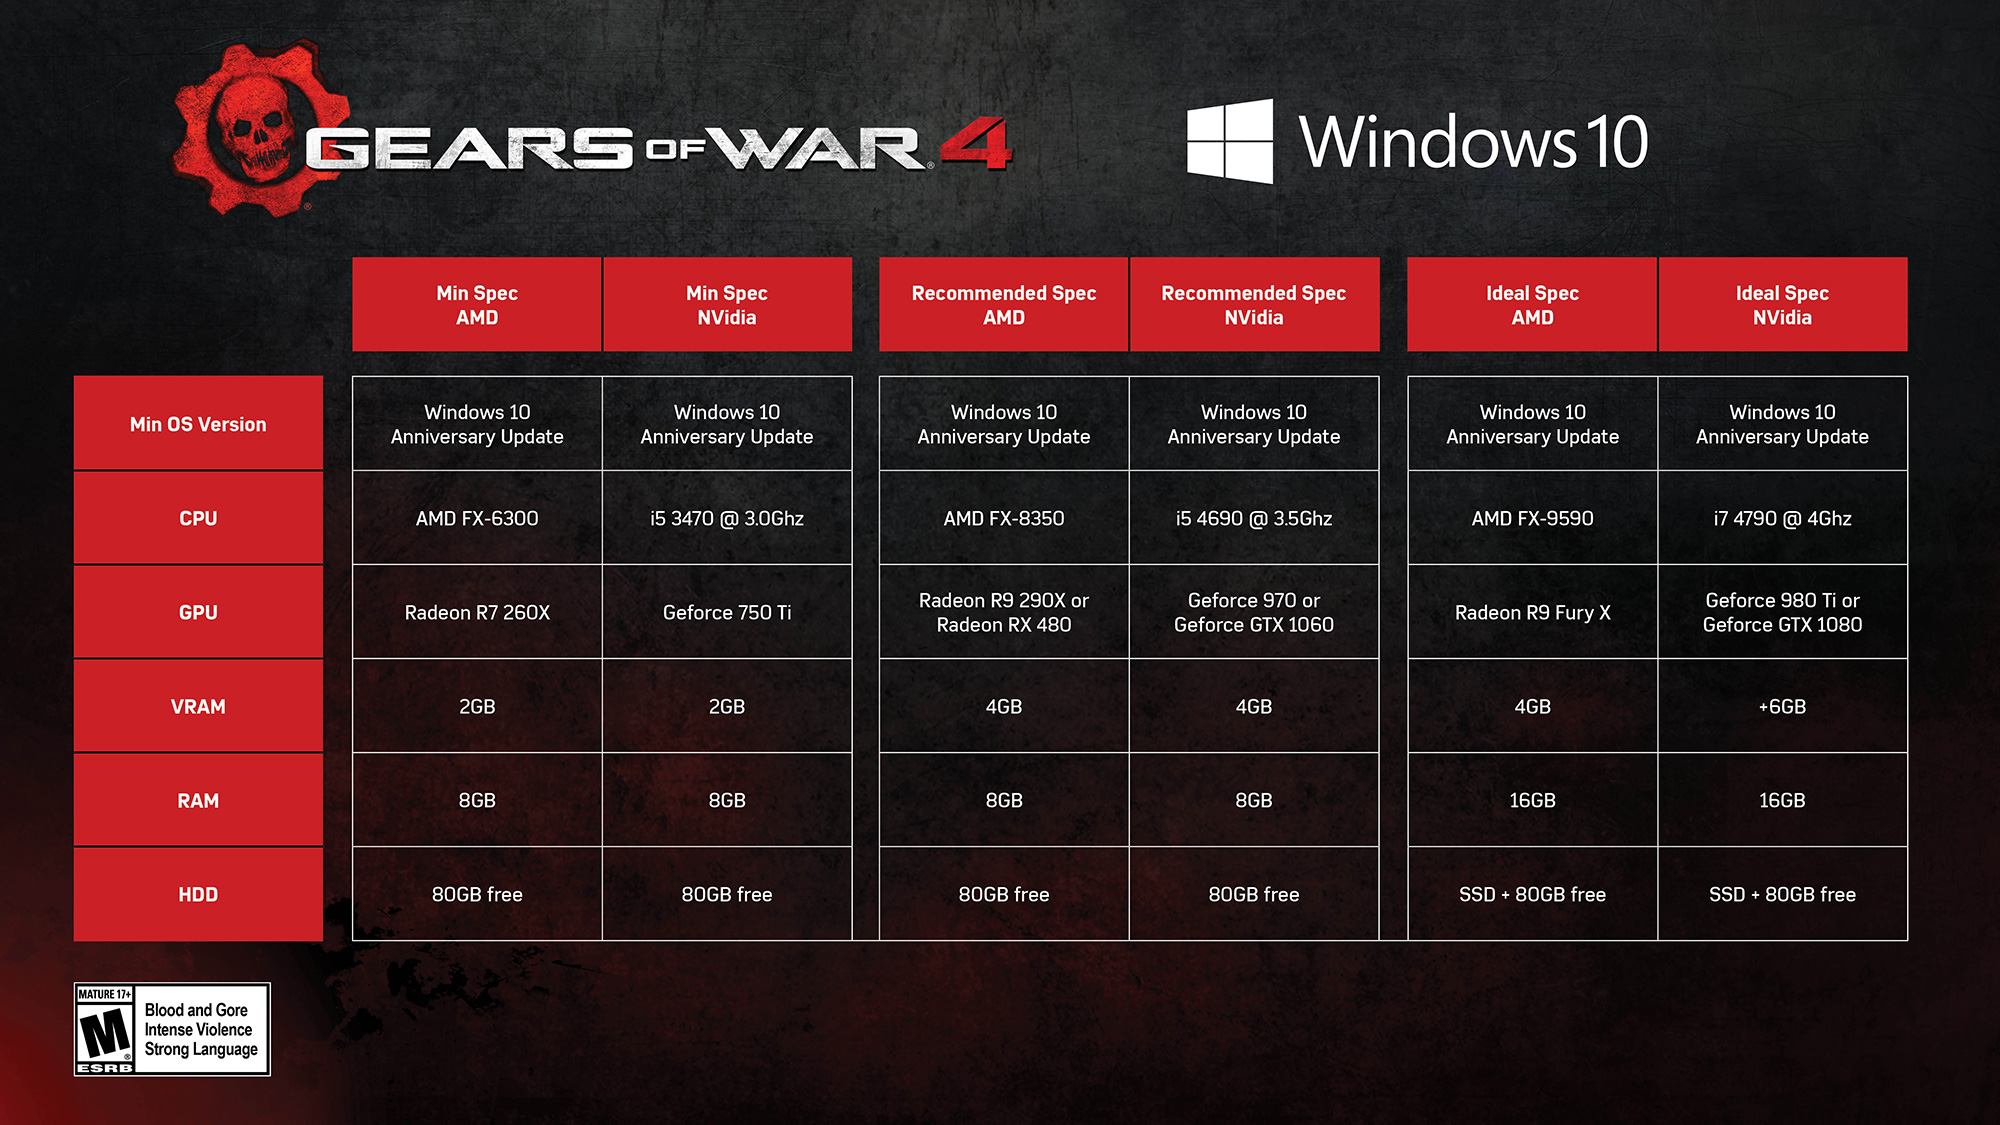 Gears of War 4 PC System Requirements Revealed